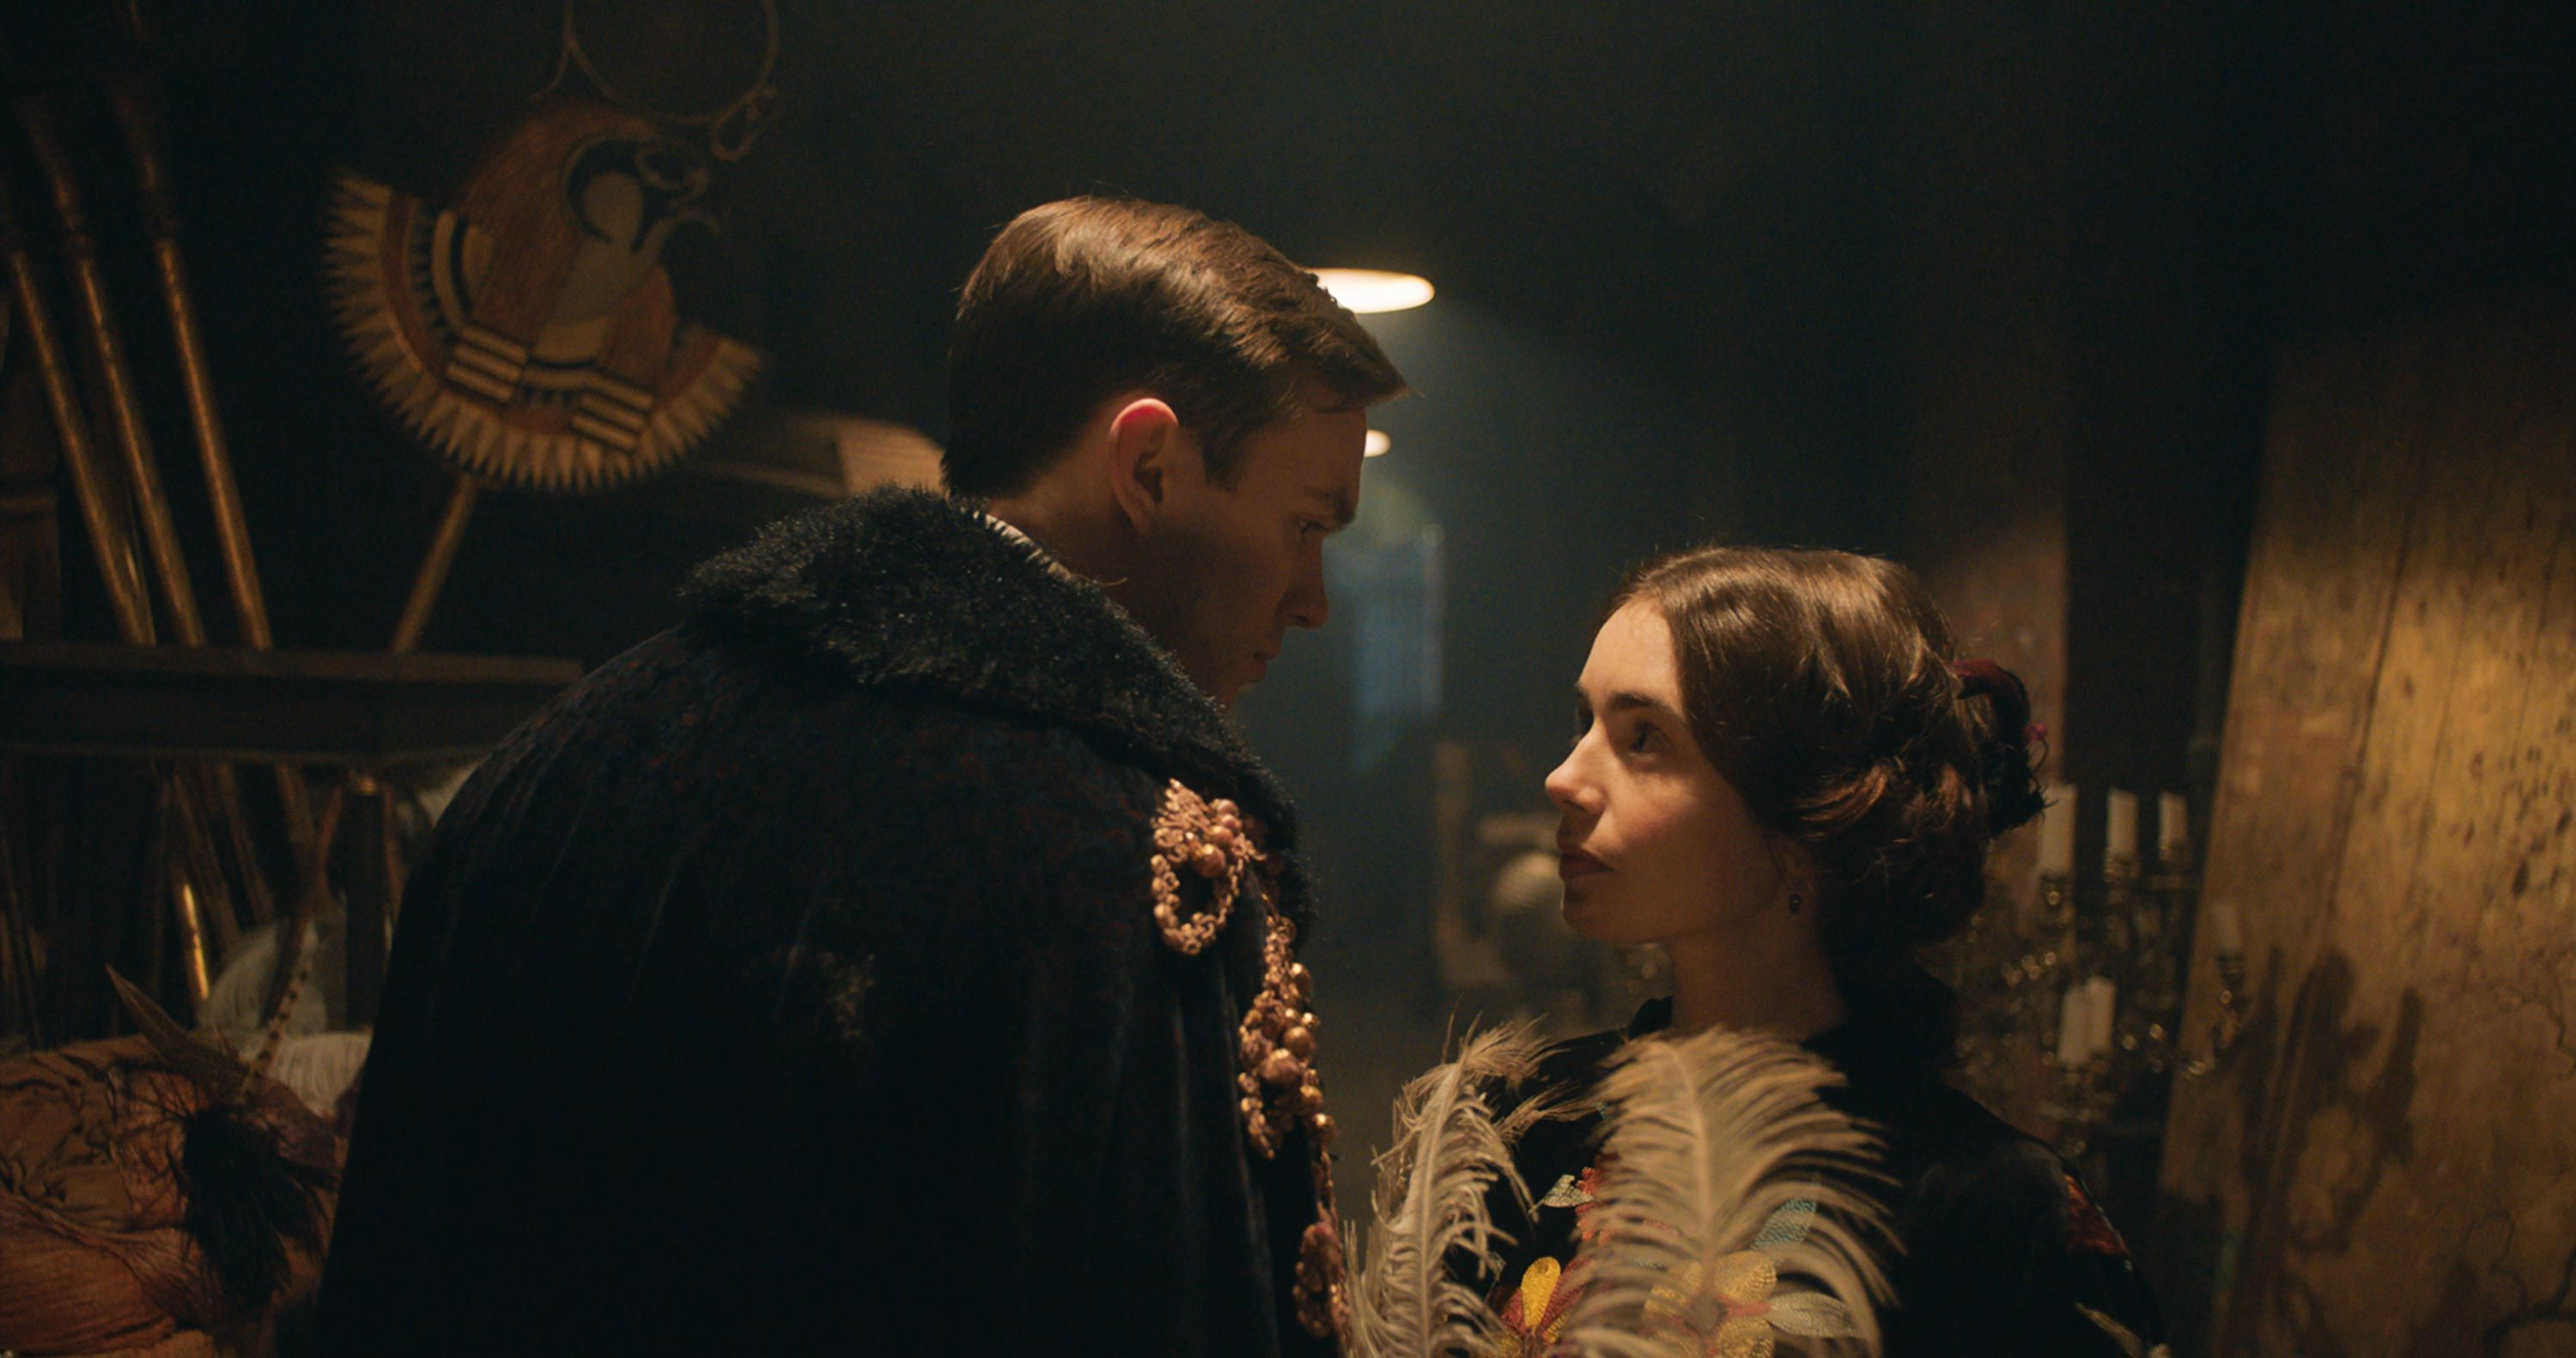 See Nicholas Hoult as 'Lord of the Rings' author in first 'Tolkien' biopic  photos | Tolkien, Nicholas hoult, Lily collins